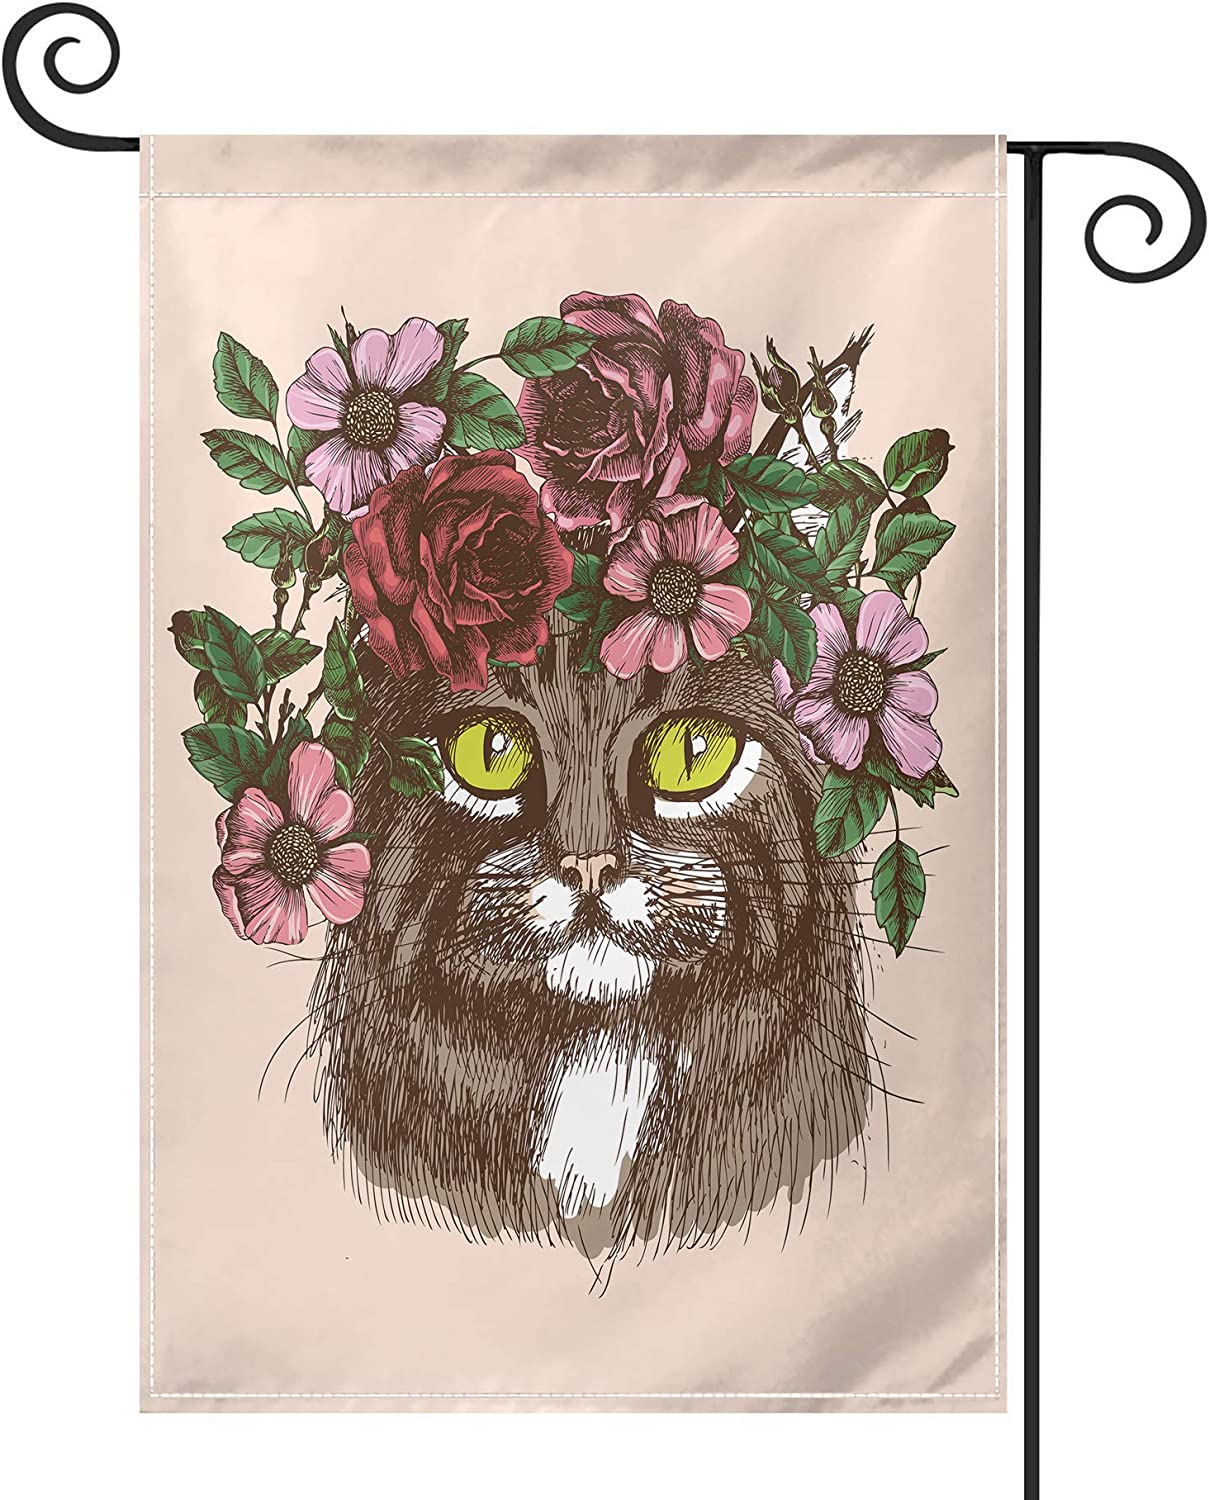 PRUNUS Hippie Tattoo Maine Coon Cat Garden Flag, Vertical Double Sided Premium Material Holiday Weather Resistant Decorative Lawn Flags Outdoor Decor 12.5 x 18 Inch Black